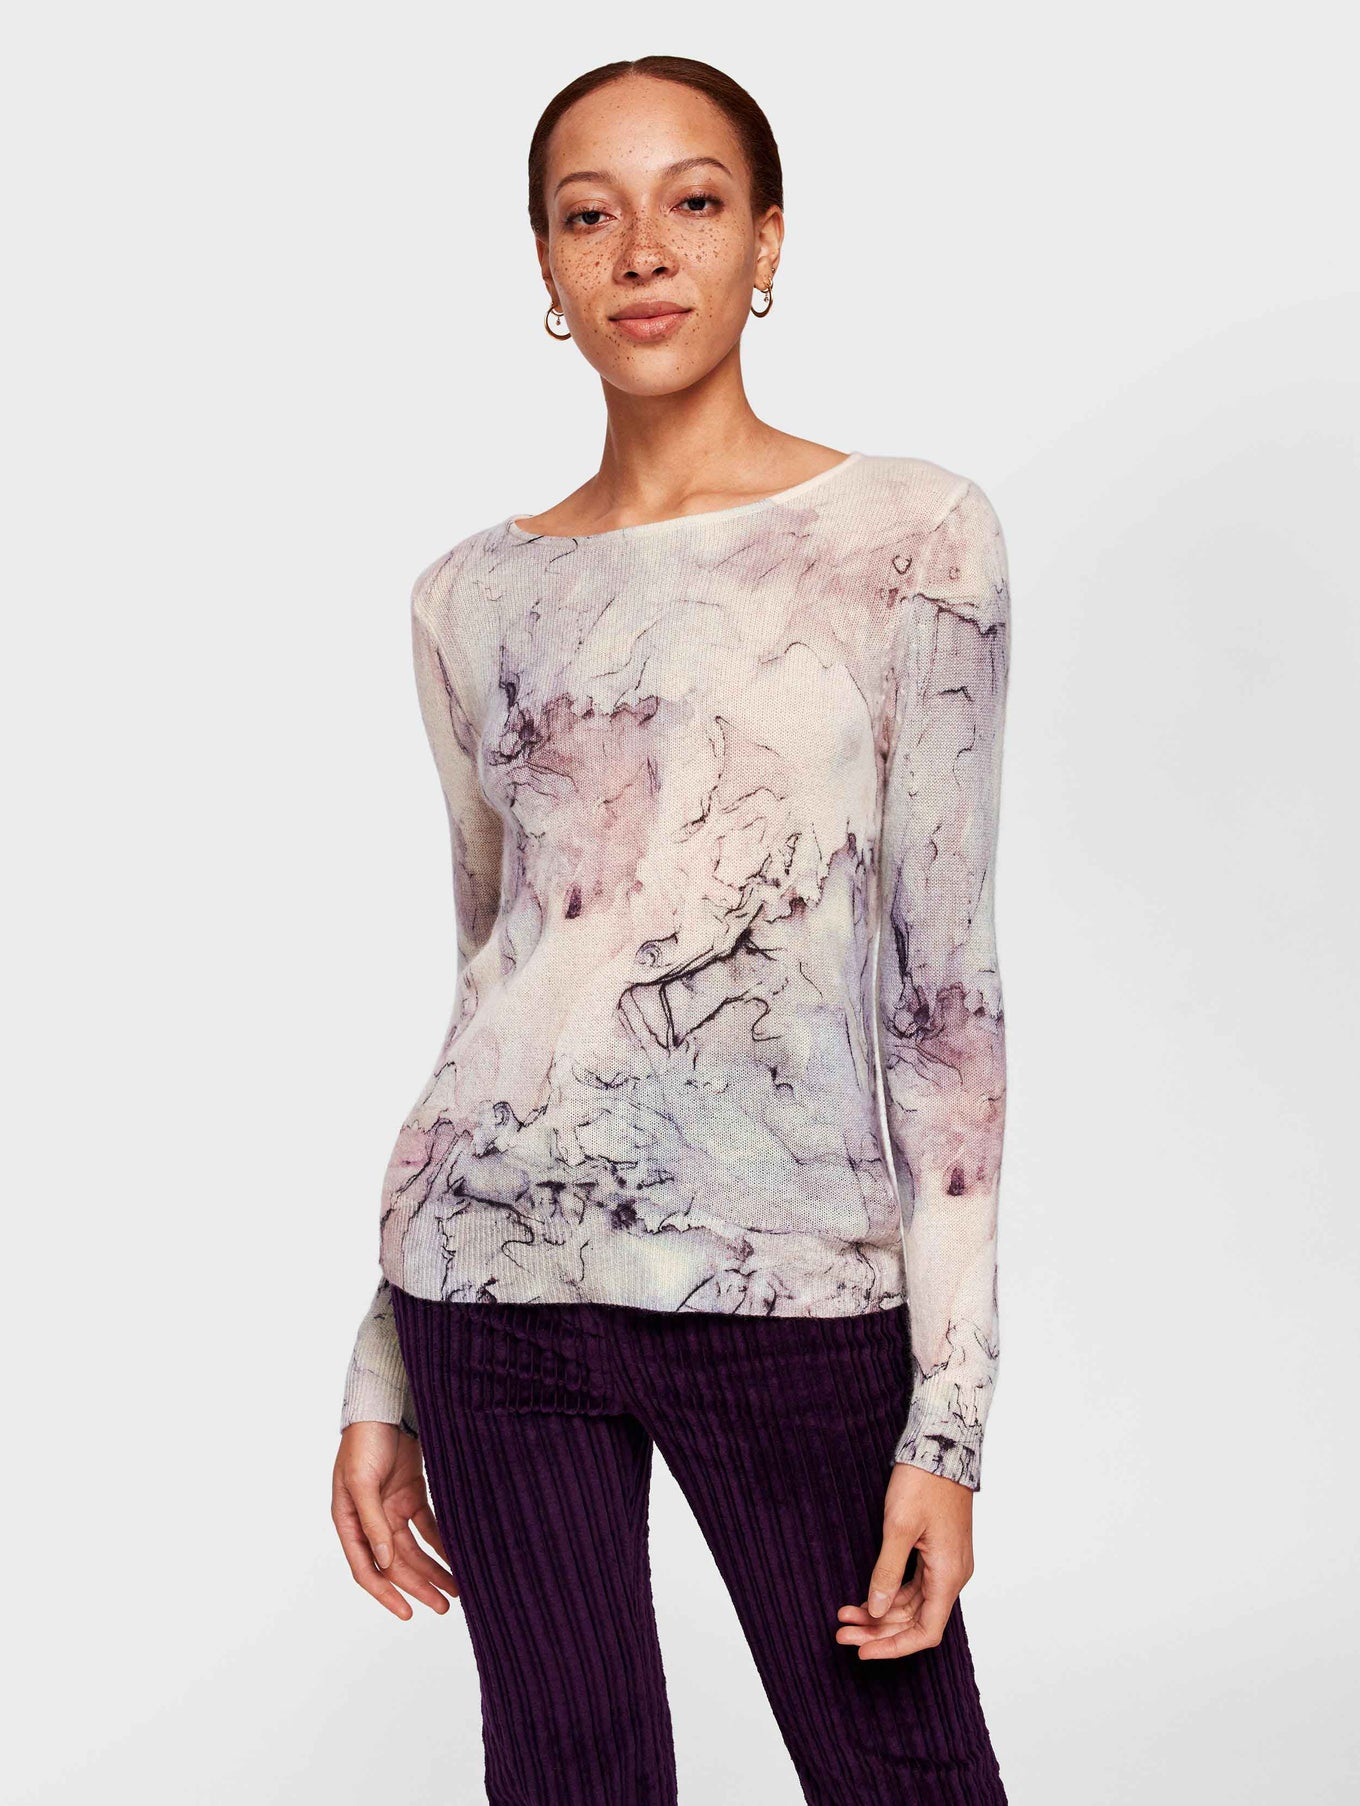 Cashmere Marble Printed Crewneck - Opal Multi - Image 2